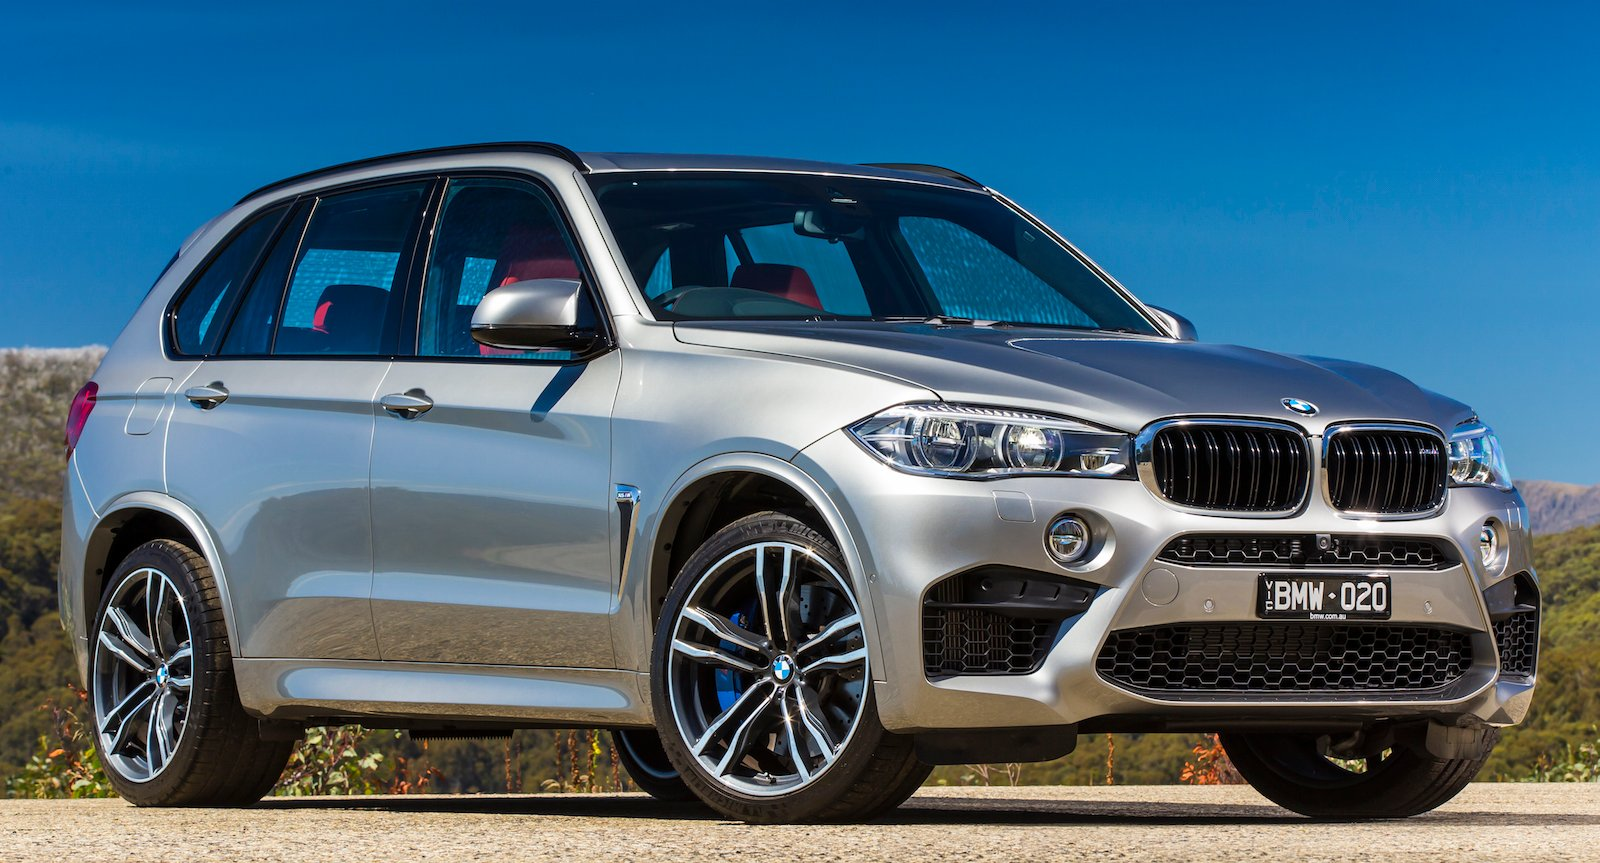 2015 bmw x5 m and x6 m review photos caradvice. Black Bedroom Furniture Sets. Home Design Ideas